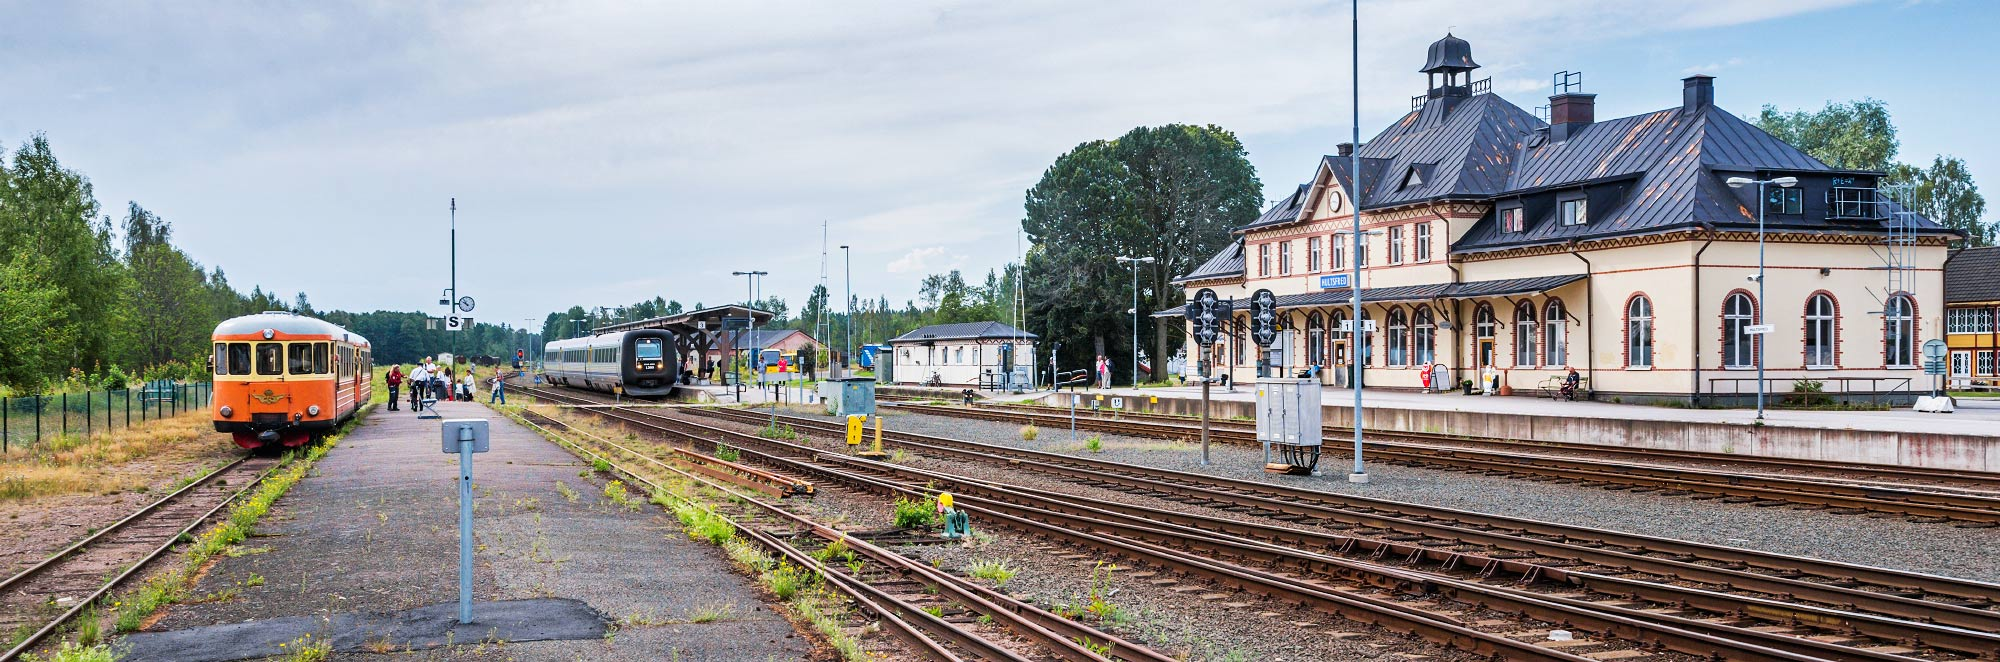 Stationen i Hultsfred 2014